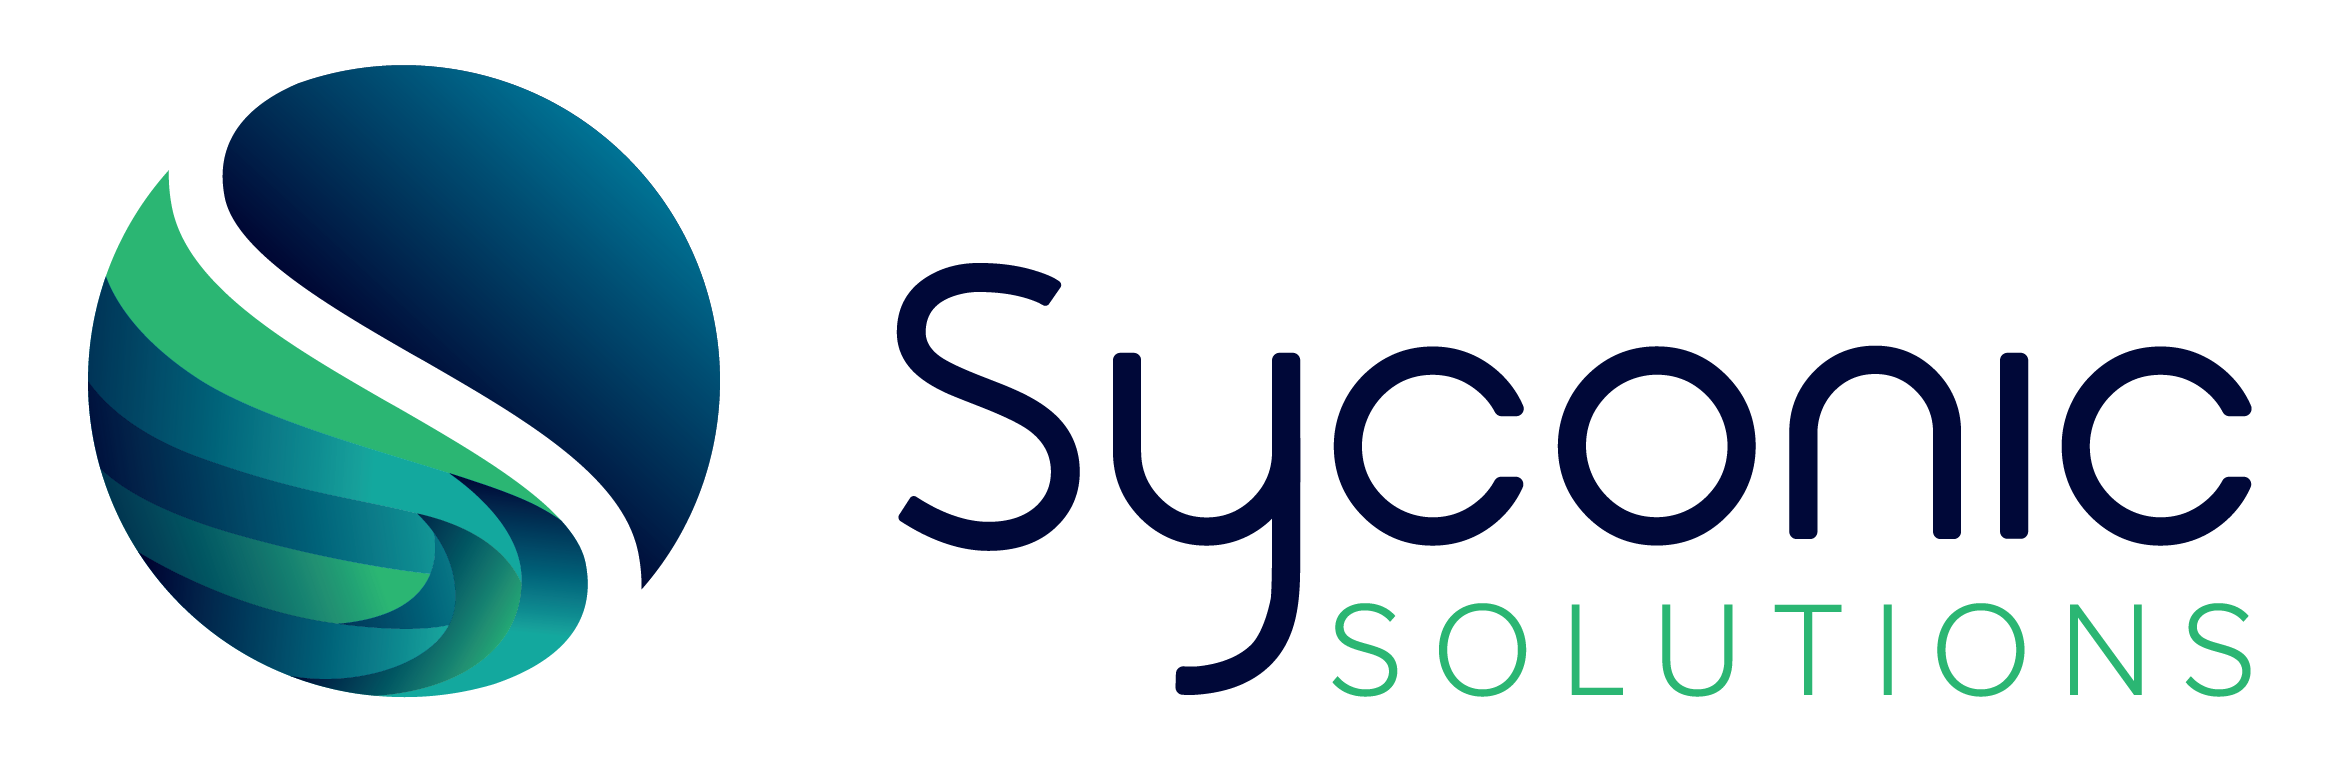 Syconic Solutions